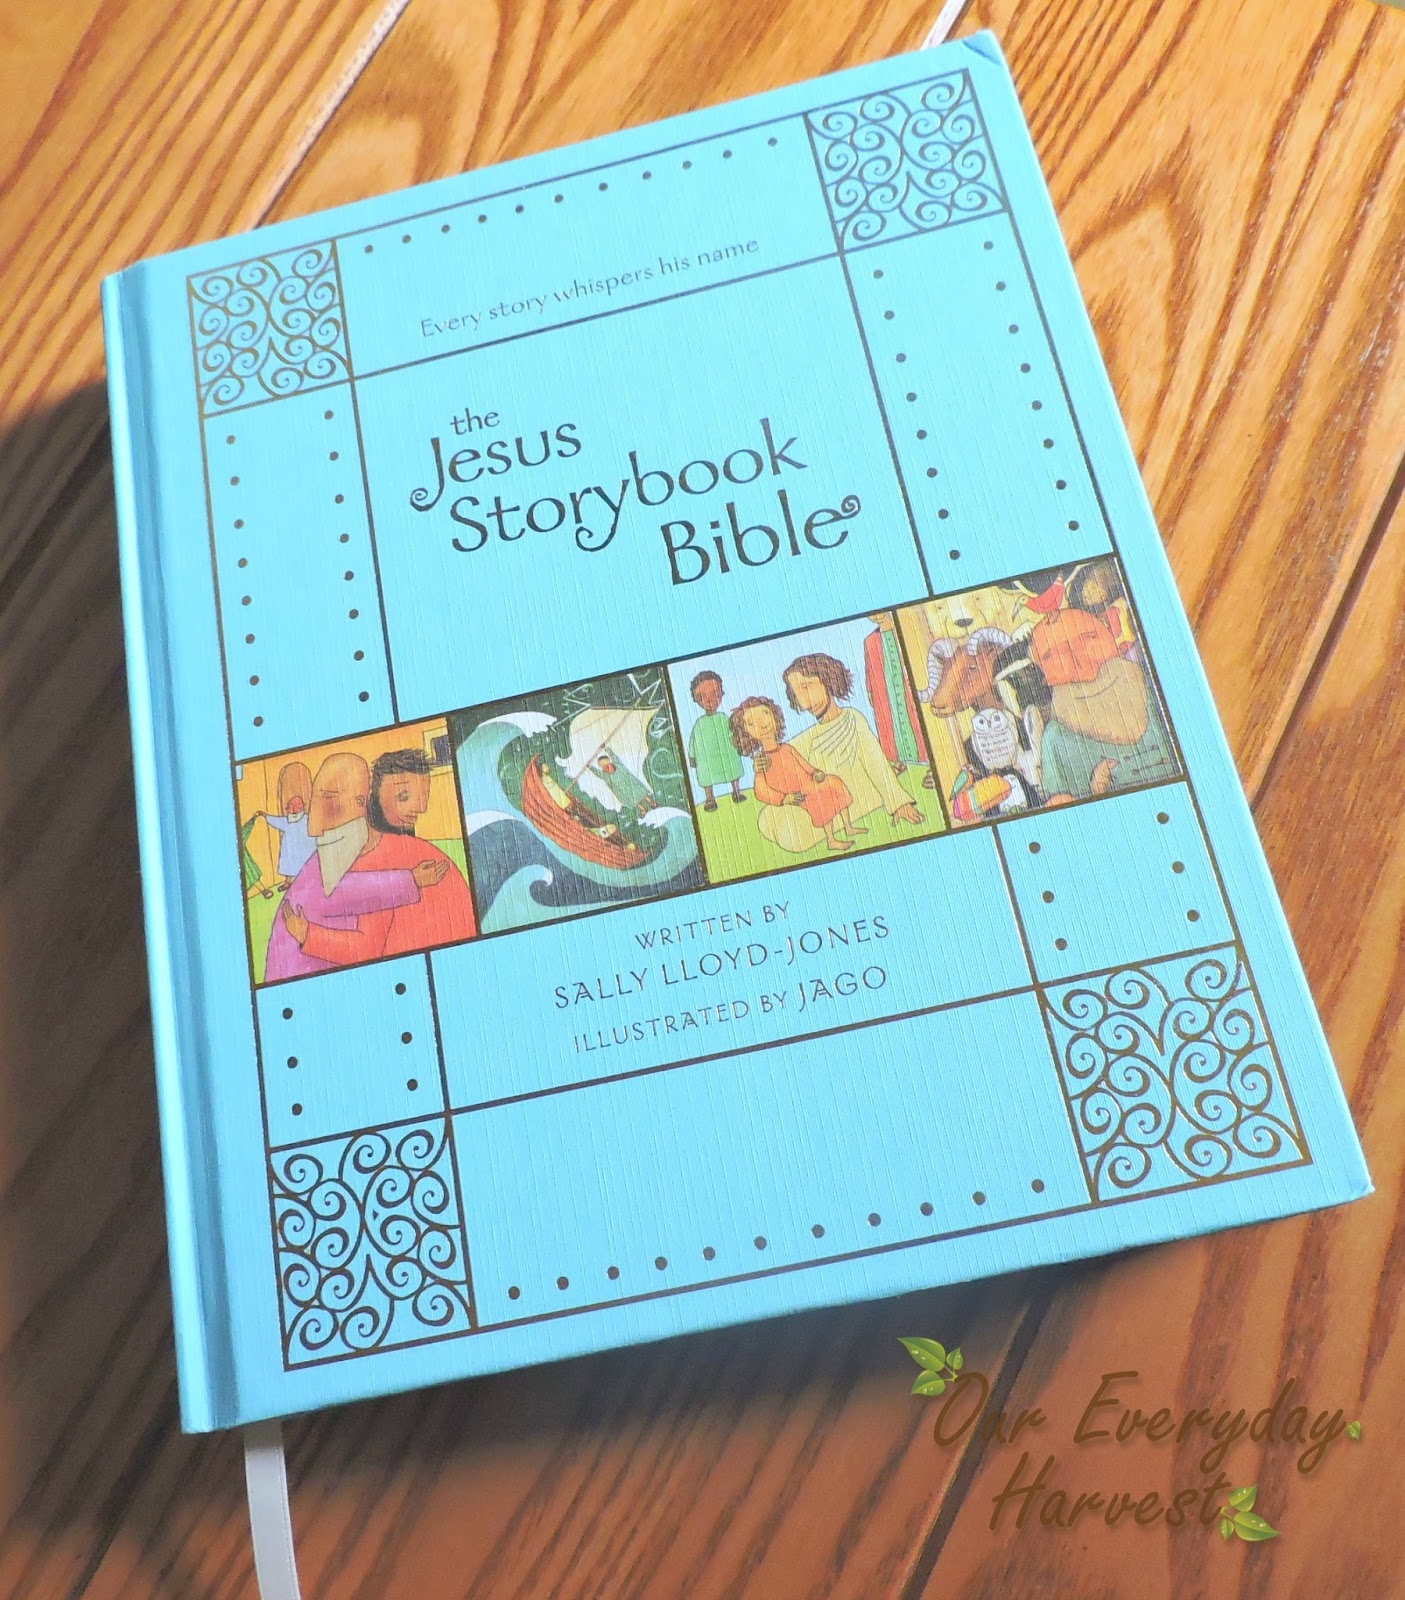 every story whispers his name the jesus storybook bible gift